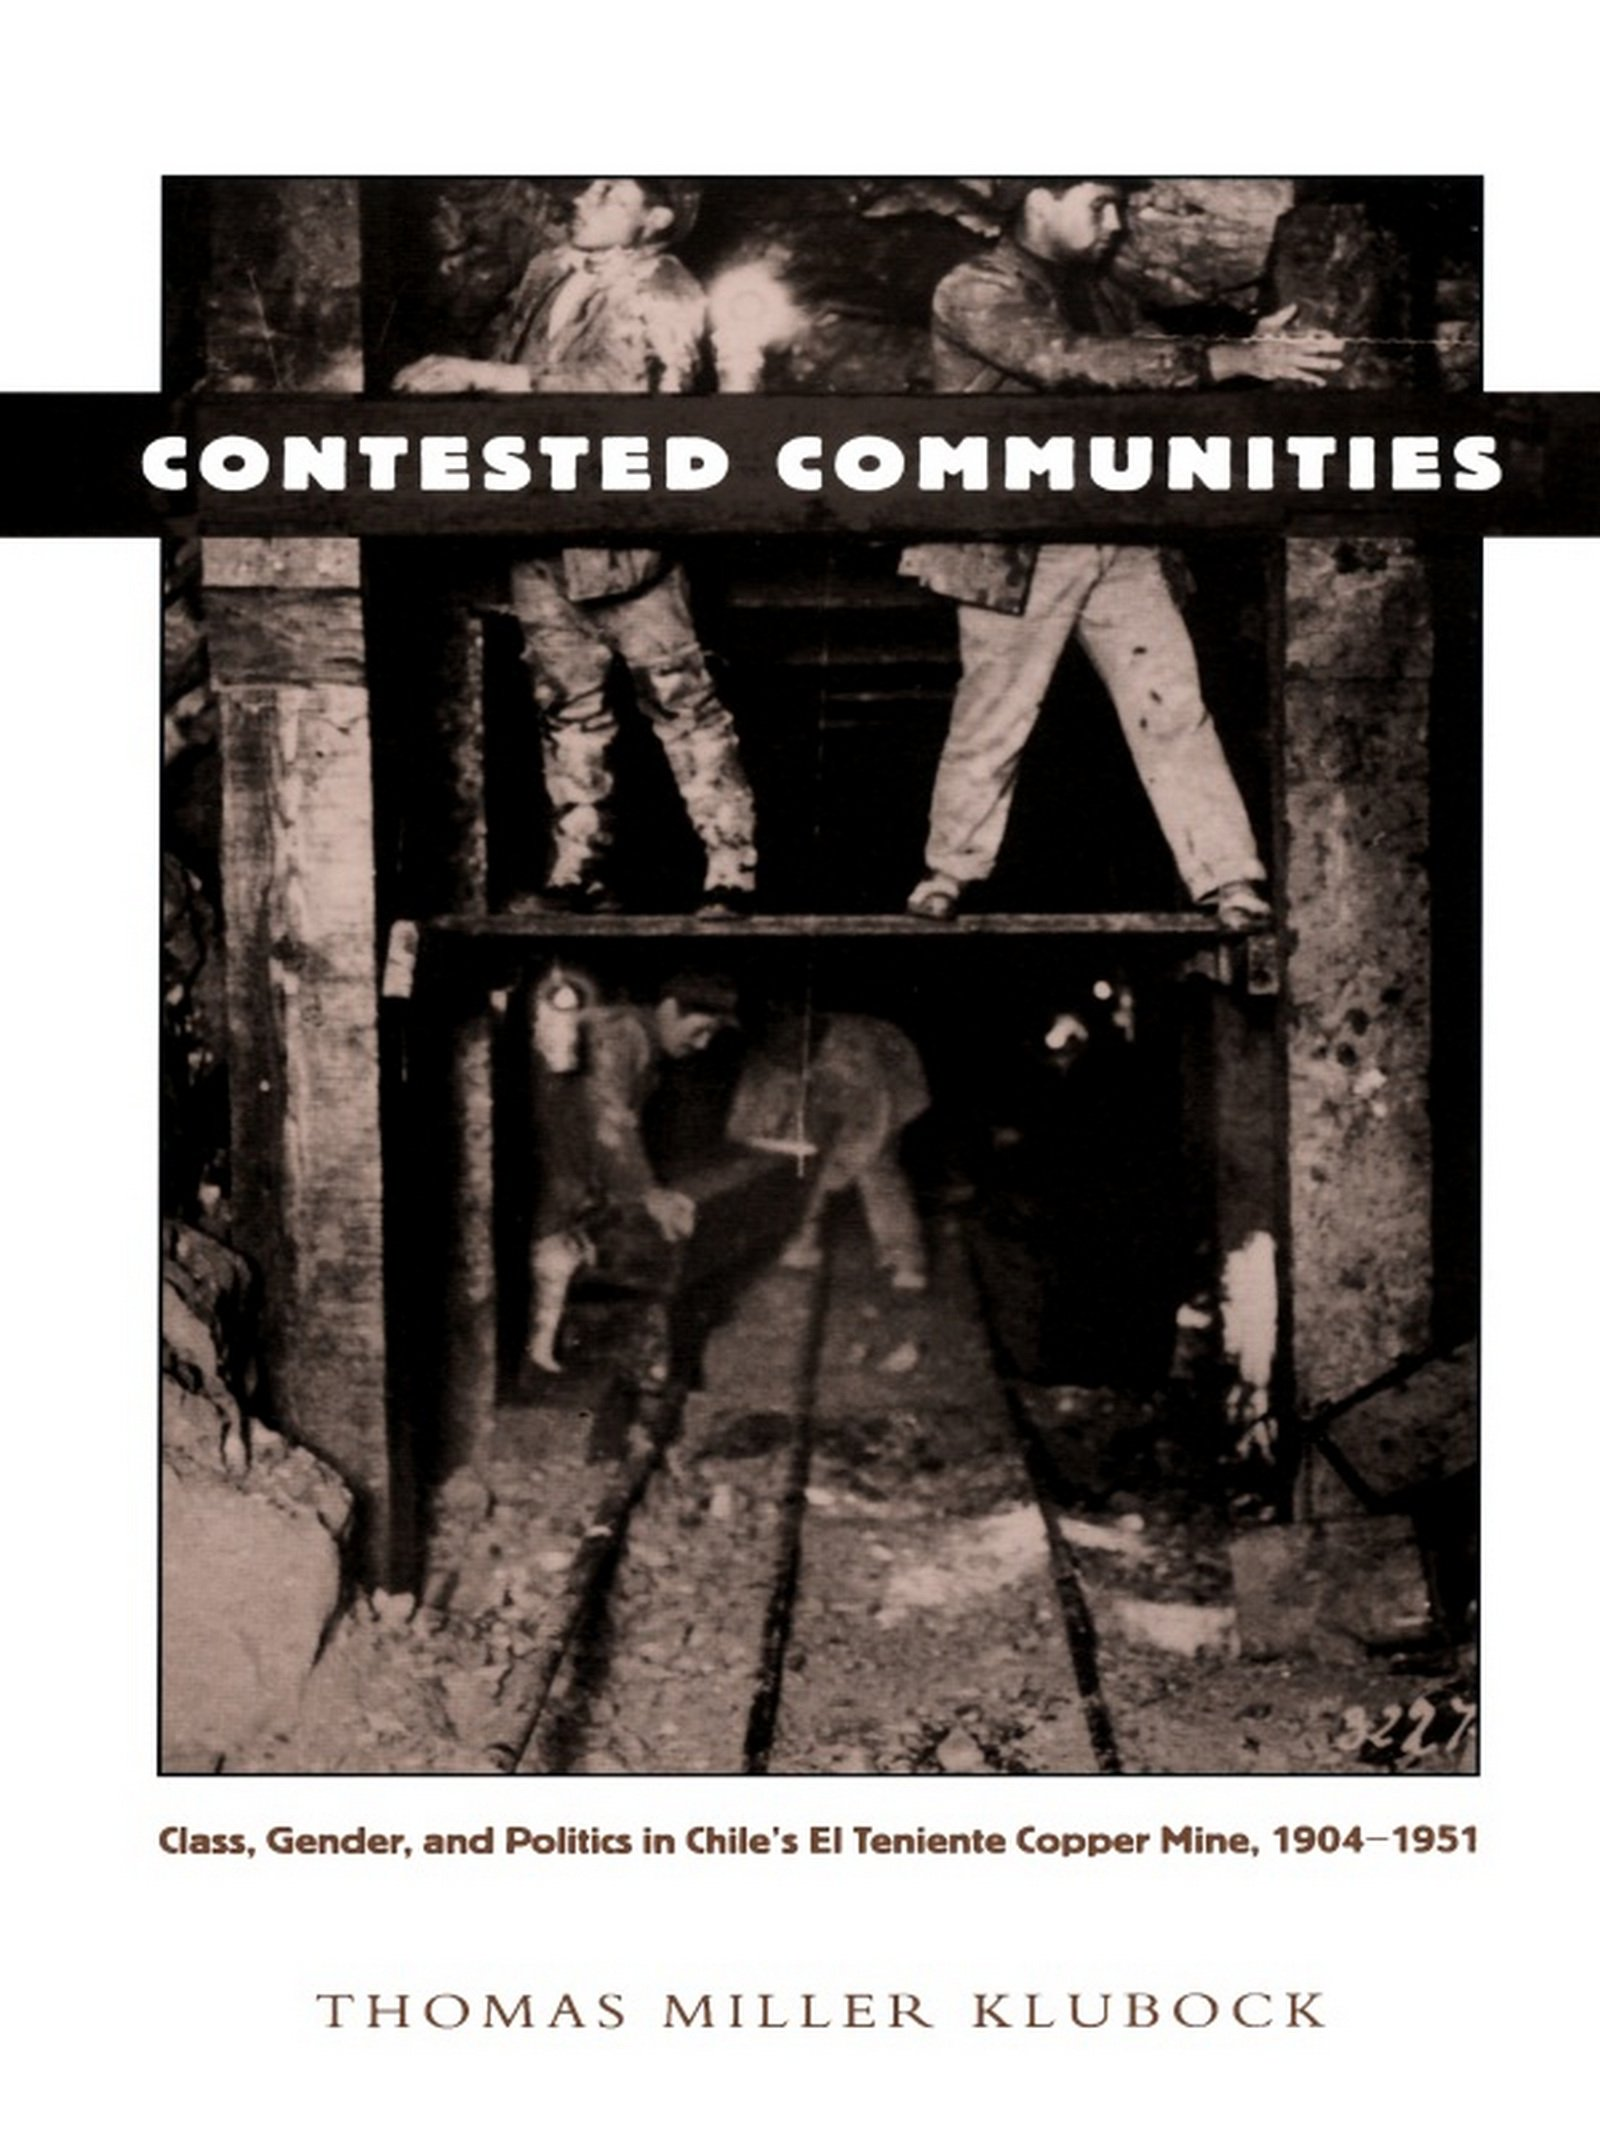 Contested Communities: Class, Gender, and Politics in Chile's El Teniente Copper Mine, 1904-1951 (Comparative and international working-class history)